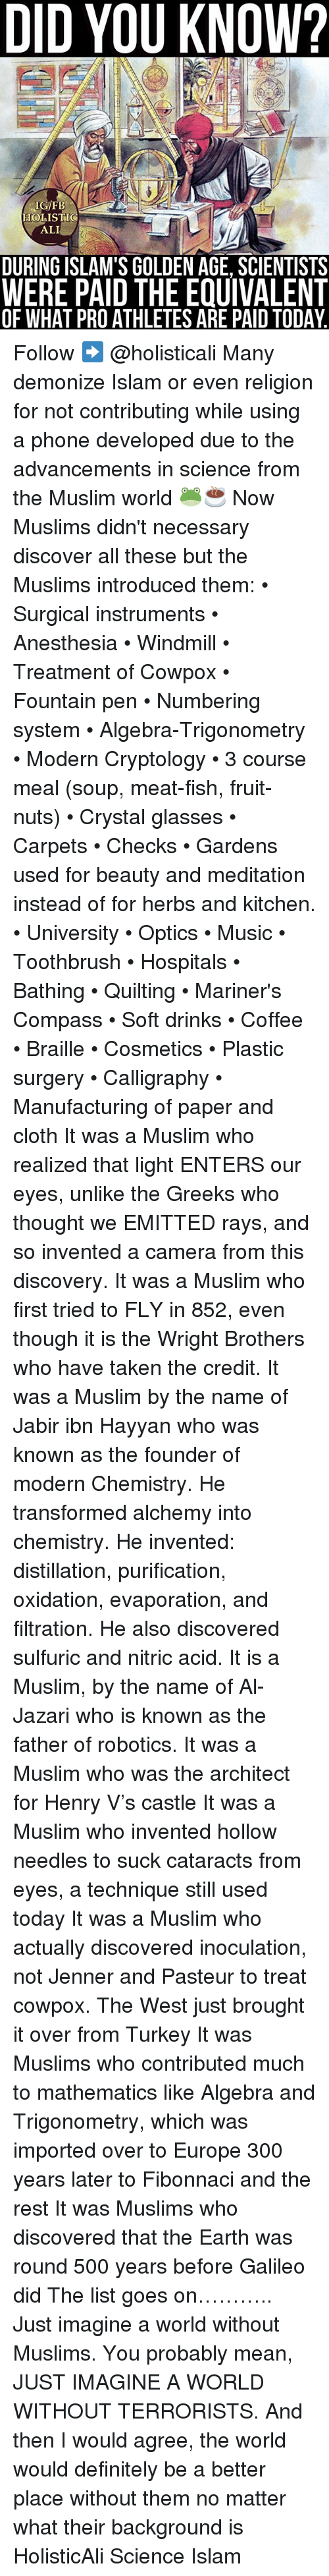 Ali, Definitely, and Memes: DID YOU KNOW?  IG/FB  HOLISTIG  ALI  DURING ISLAM'S GOLDEN AGE, SCIENTISTS  WERE PAID THE EQUIVALENT  OF WHAT PROATHLETES ARE PAID TODAY. Follow ➡️ @holisticali Many demonize Islam or even religion for not contributing while using a phone developed due to the advancements in science from the Muslim world 🐸☕️ Now Muslims didn't necessary discover all these but the Muslims introduced them: • Surgical instruments • Anesthesia • Windmill • Treatment of Cowpox • Fountain pen • Numbering system • Algebra-Trigonometry • Modern Cryptology • 3 course meal (soup, meat-fish, fruit-nuts) • Crystal glasses • Carpets • Checks • Gardens used for beauty and meditation instead of for herbs and kitchen. • University • Optics • Music • Toothbrush • Hospitals • Bathing • Quilting • Mariner's Compass • Soft drinks • Coffee • Braille • Cosmetics • Plastic surgery • Calligraphy • Manufacturing of paper and cloth It was a Muslim who realized that light ENTERS our eyes, unlike the Greeks who thought we EMITTED rays, and so invented a camera from this discovery. It was a Muslim who first tried to FLY in 852, even though it is the Wright Brothers who have taken the credit. It was a Muslim by the name of Jabir ibn Hayyan who was known as the founder of modern Chemistry. He transformed alchemy into chemistry. He invented: distillation, purification, oxidation, evaporation, and filtration. He also discovered sulfuric and nitric acid. It is a Muslim, by the name of Al-Jazari who is known as the father of robotics. It was a Muslim who was the architect for Henry V's castle It was a Muslim who invented hollow needles to suck cataracts from eyes, a technique still used today It was a Muslim who actually discovered inoculation, not Jenner and Pasteur to treat cowpox. The West just brought it over from Turkey It was Muslims who contributed much to mathematics like Algebra and Trigonometry, which was imported over to Europe 300 years later to Fibonnaci and the rest It was Muslims who discovered that the Earth was round 500 years before Galileo did The list goes on……….. Just imagine a world without Muslims. You probably mean, JUST IMAGINE A WORLD WITHOUT TERRORISTS. And then I would agree, the world would definitely be a better place without them no matter what their background is HolisticAli Science Islam